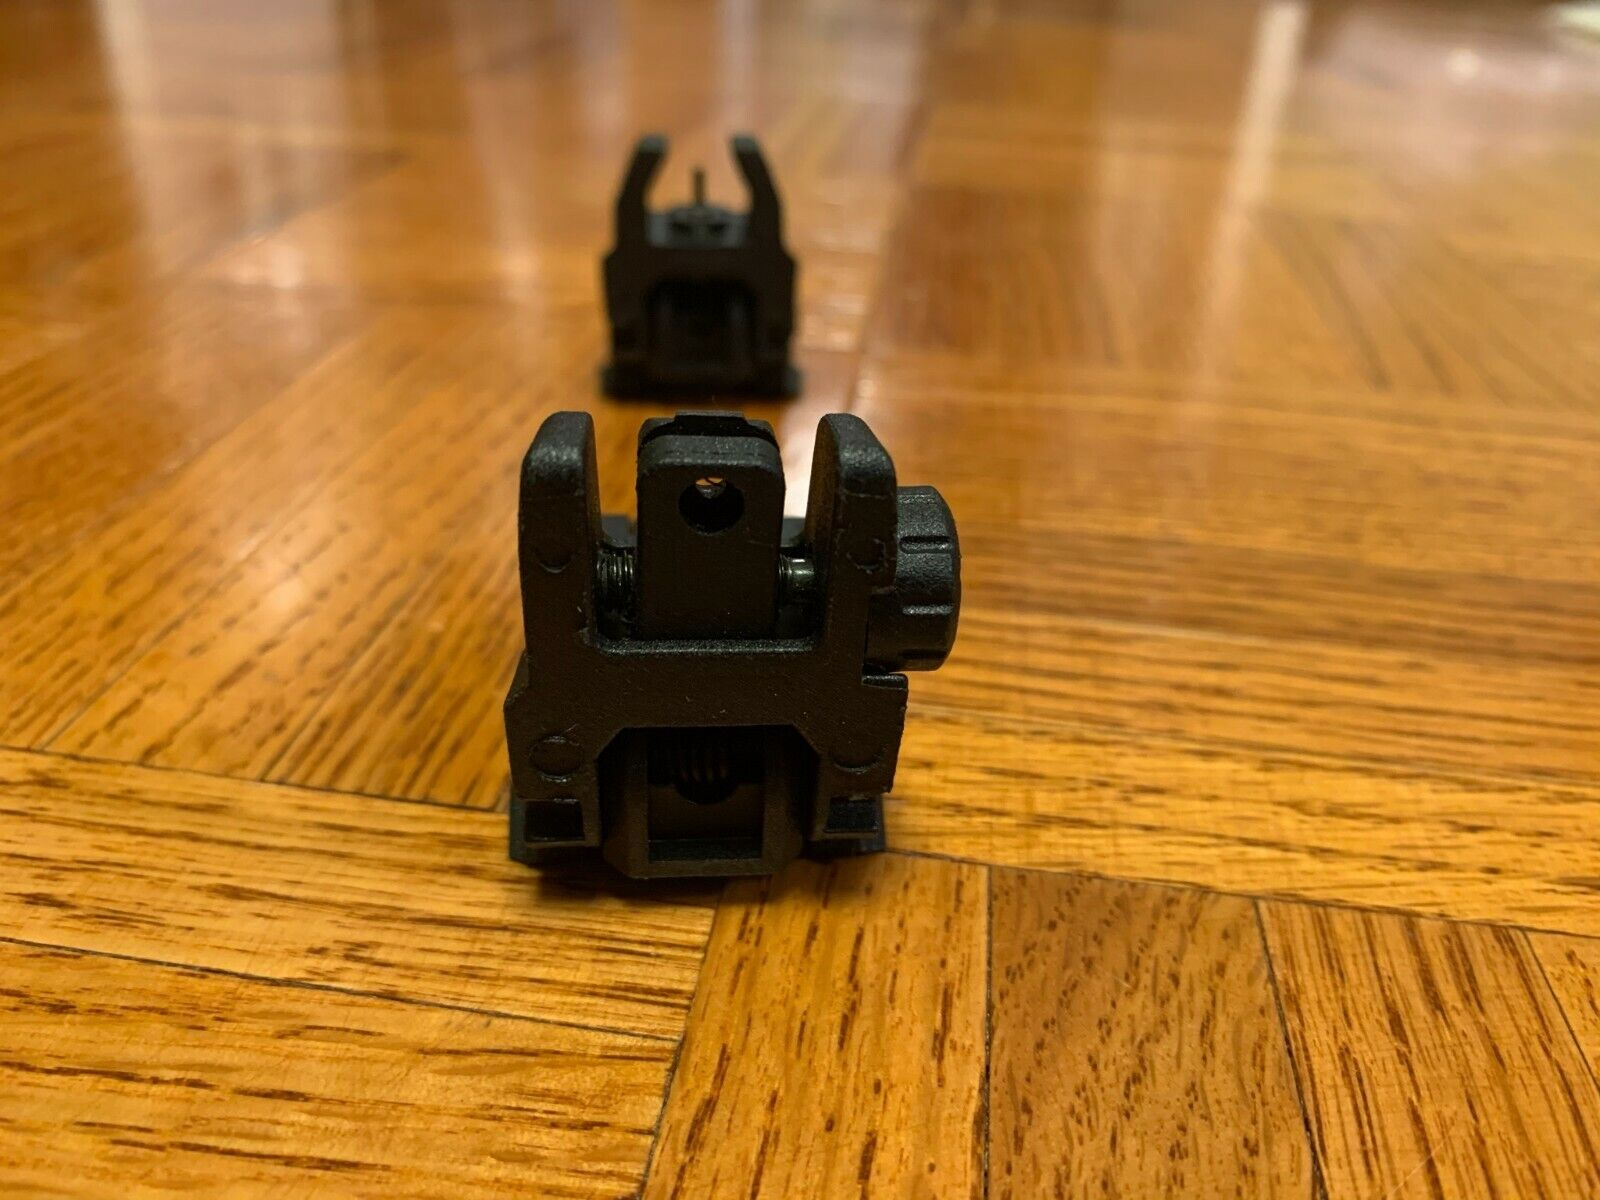 Low Profile Flip-up Folding Iron Sights For Weaver Rail Mount - Rifle Or Pistol - $20.00